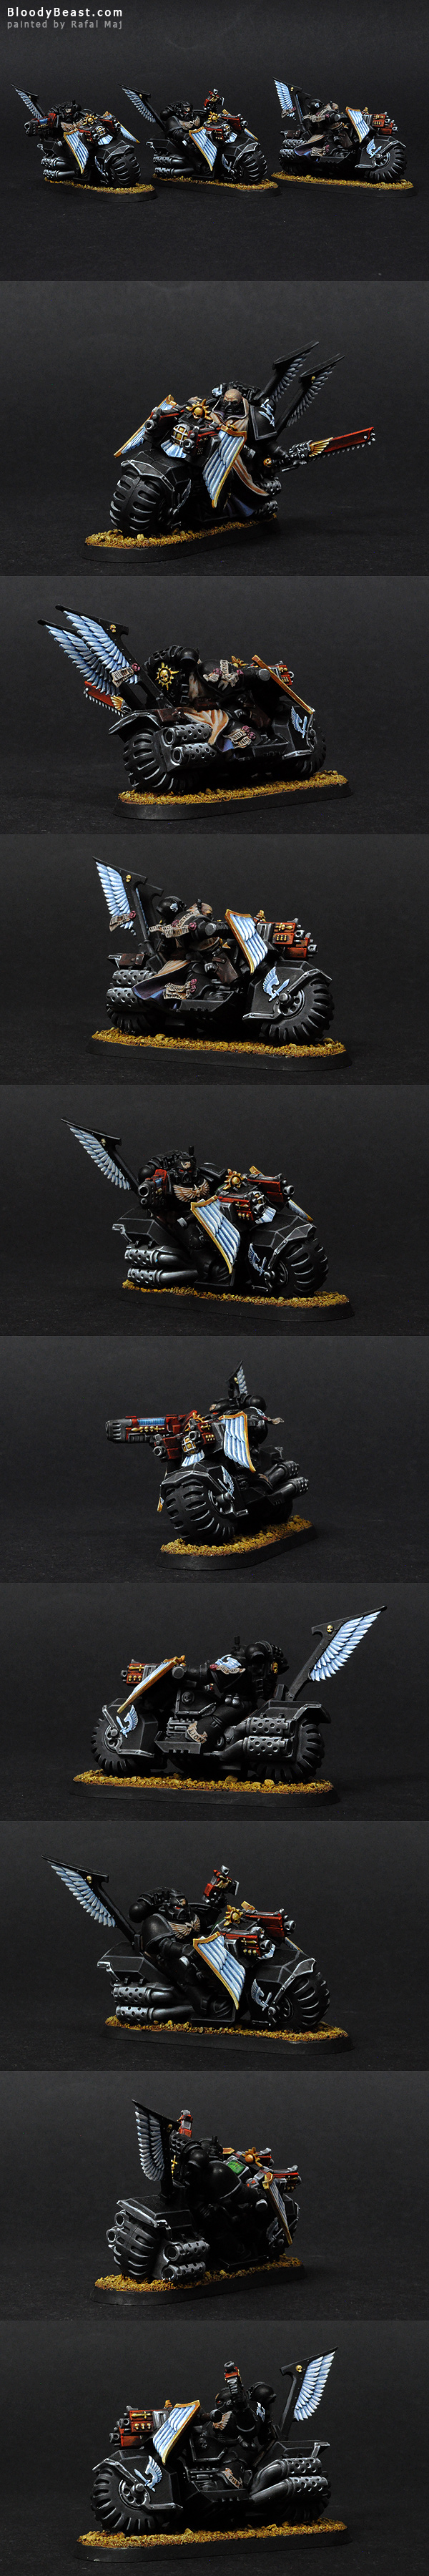 Dark Angels Ravenwing Bike Squad painted by Rafal Maj (BloodyBeast.com)